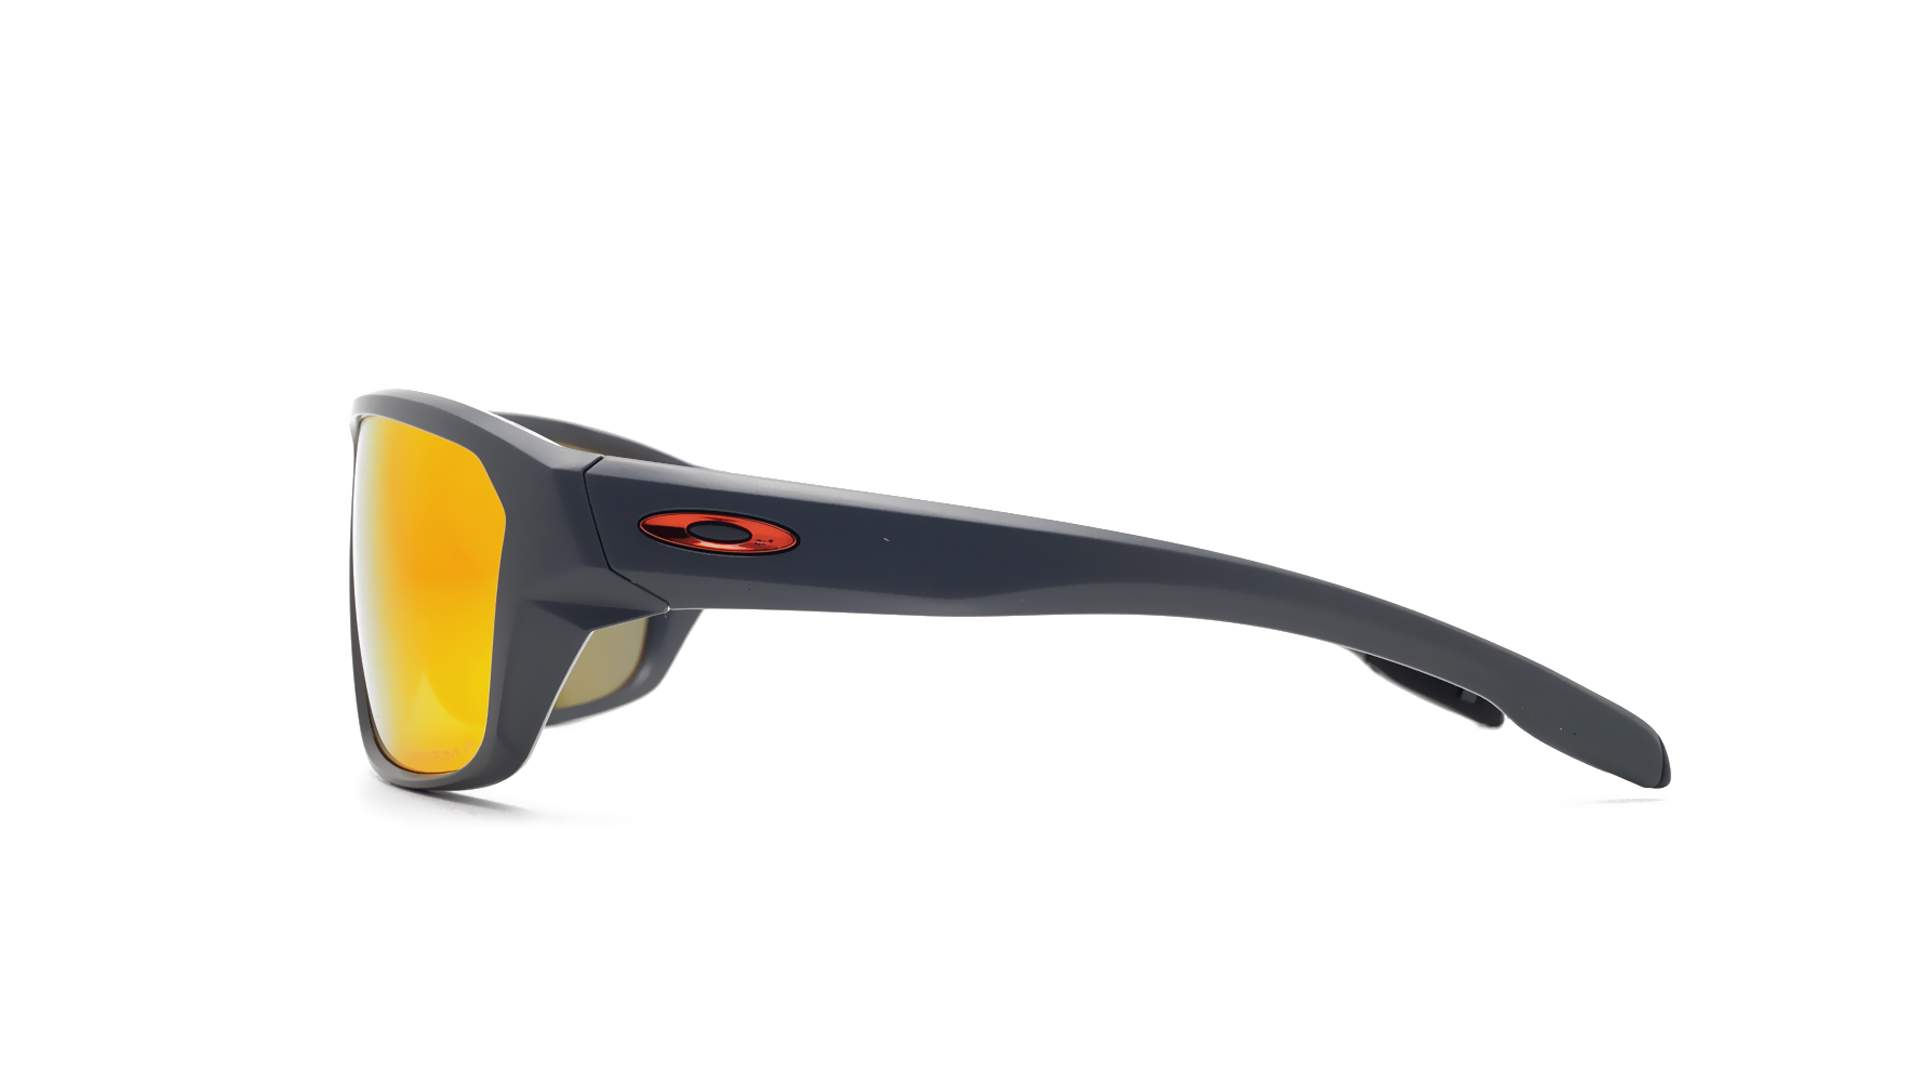 25a11fabda1 Sunglasses Oakley Split shot Grey Matte Prizm OO9416 08 64-17 Large  Polarized Mirror